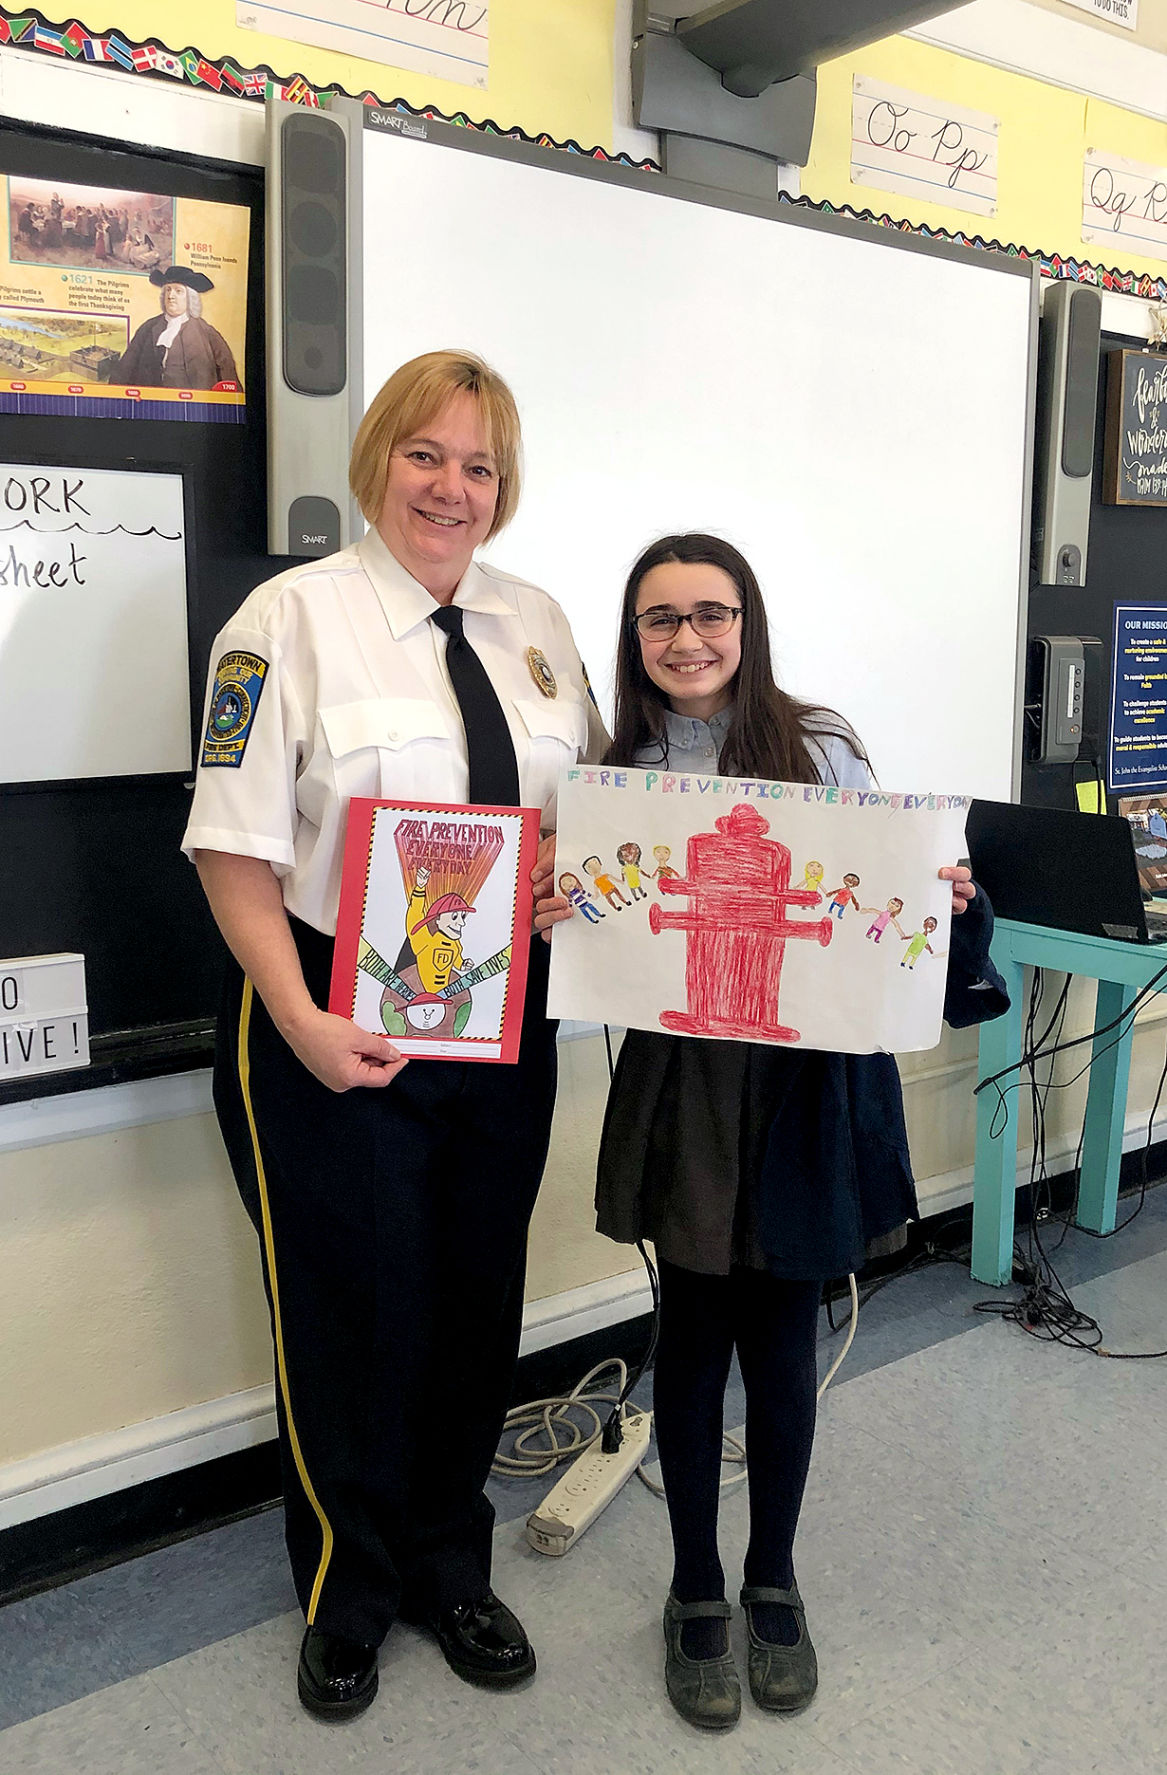 Fire Prevention Poster Contest: Students Place in Statewide Contest